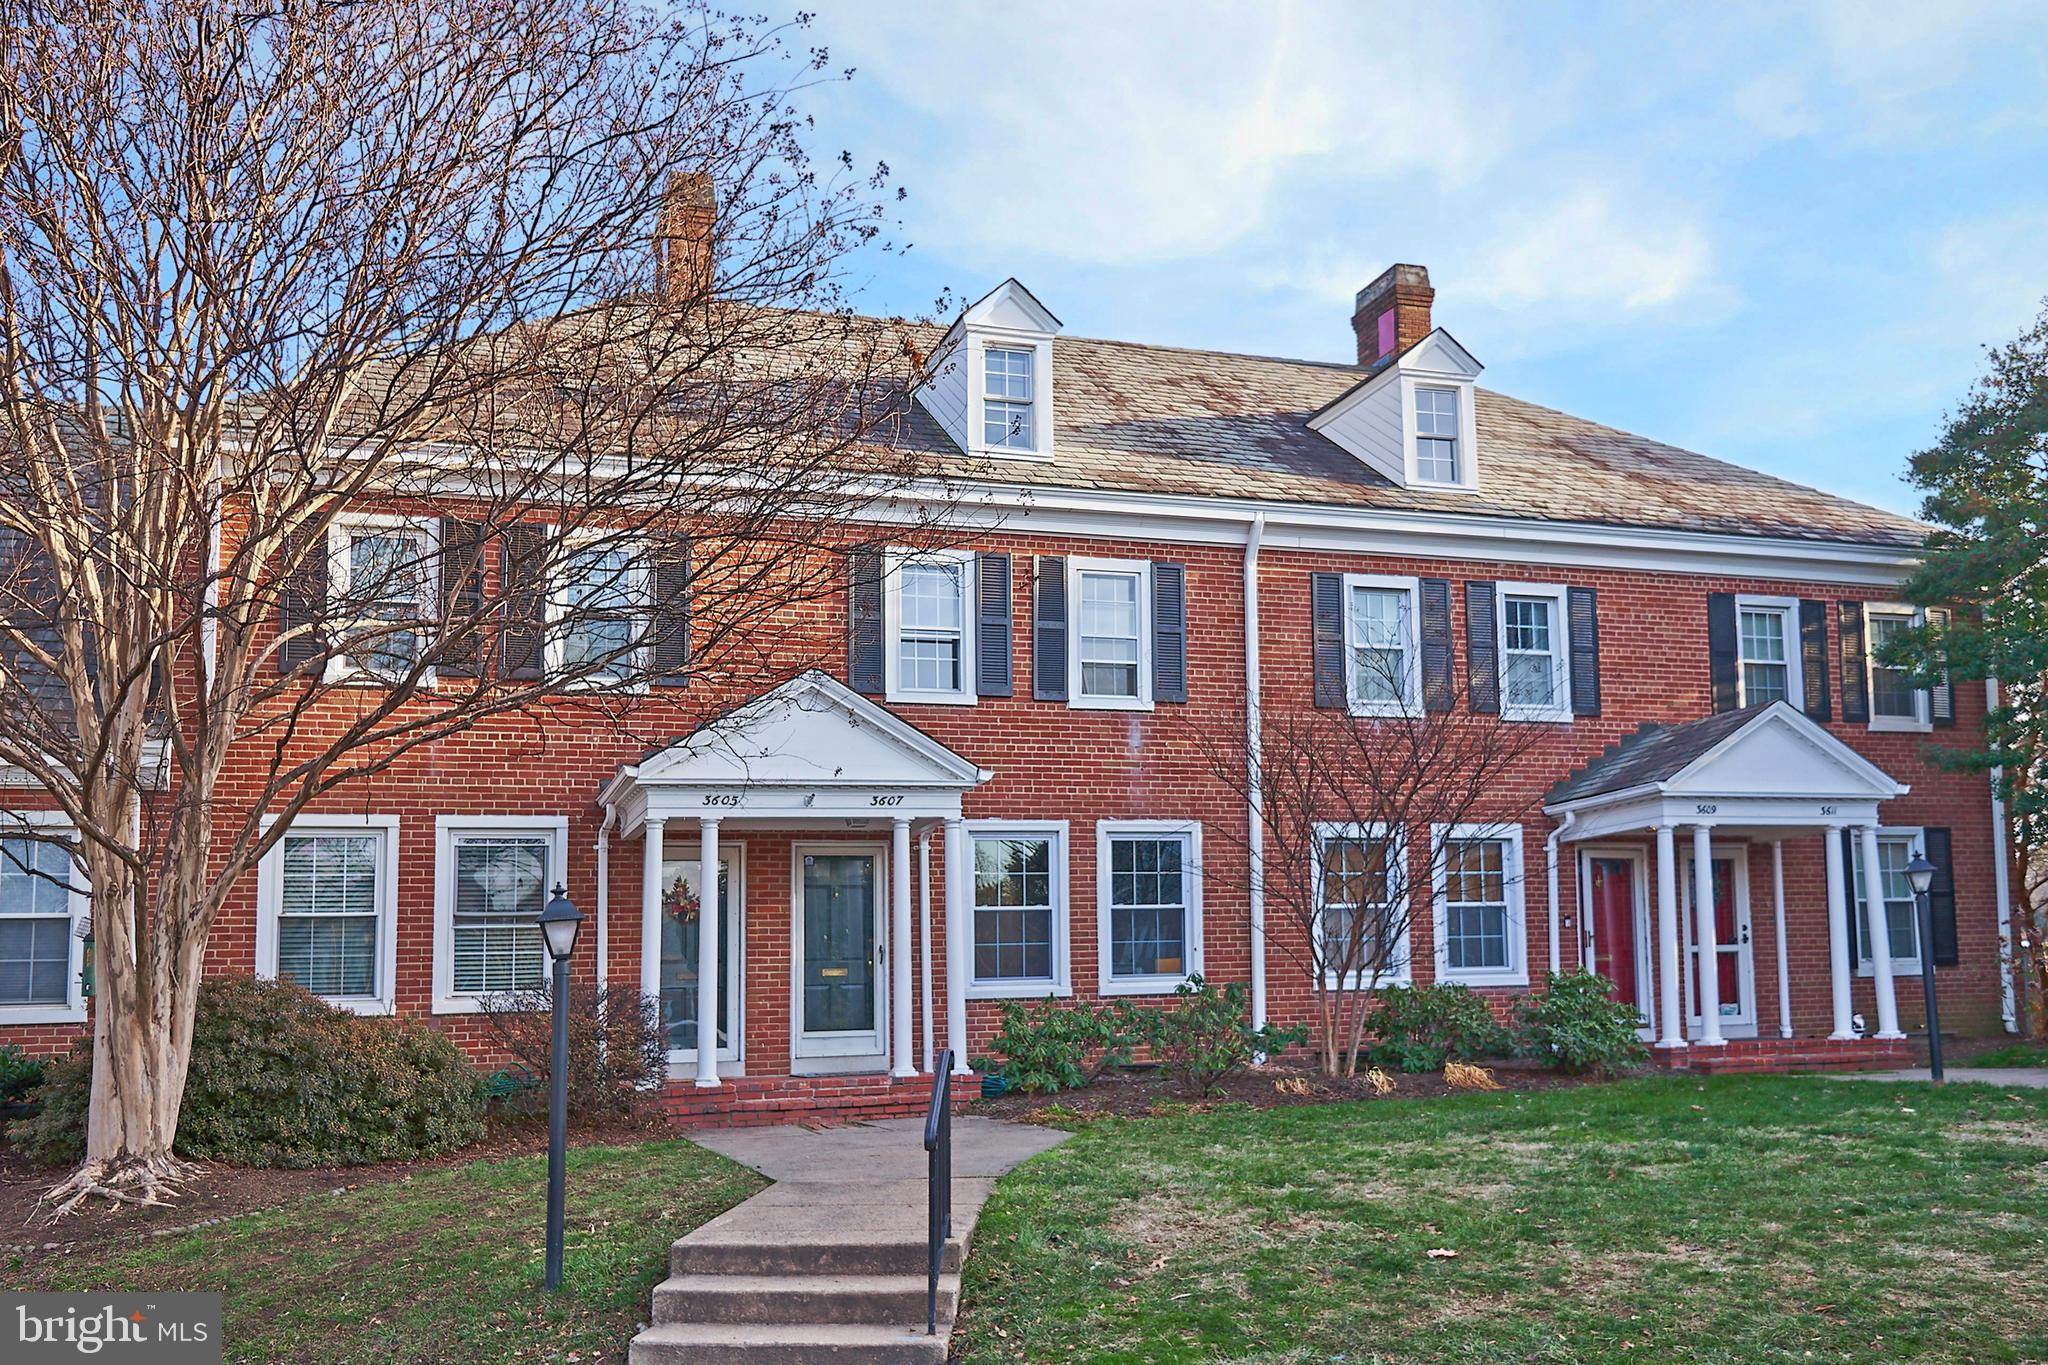 This gorgeous Clarendon model home in the sought after historic community of Fairlington Arbor is the nicest unit on the market for many reasons.  This unit boasts a rare assigned parking space.  The parking space is a large spot on the end of the row for those particular about their vehicle!  Most importantly, this home boasts the very rare large attic with dormer window.  Owners have converted these huge attics into additional bedrooms and bathrooms.  This is one of the most sought after floor plans and they rarely came to market.  Last most comparable unit with this attic sold for $610K.  Original floors on main and upstairs just refinished with a gorgeous dark walnut stain.  Home has been fully repainted in neutral grays from Sherwin Williams with softer hues in bedrooms.  Upstairs master bedroom boasts exquisite crown moldings walk-in closet and second closet.  Upstairs bath features mosaic floor tile, subway tile bath, brushed brass fixtures, navy vanity with marble top.  Kitchen features alabaster cabinets with navy island, top of the line imported quartz counters, and Samsung black stainless appliances.  Basement features recessed lighting, water resistant laminate floors, new stacked washer/dryer, and luxury bathroom.  The bathroom features an expansive shower with marble floor, white subway tile, and black fixtures.  Gray vanity, mosaic tile floor, and bluetooth speaker/exhaust fan add to the appeal of this gorgeous home.  New HVAC with smart thermostat allows you to control your home temperature from anywhere.  This home does not have the asbestos popcorn ceilings found in most of Fairlington.  All updates were done with great attention to detail and finest craftsmanship for the most discerning buyer!  It was worth the wait, you've finally found your dream home in Fairlington! Owner is agent.